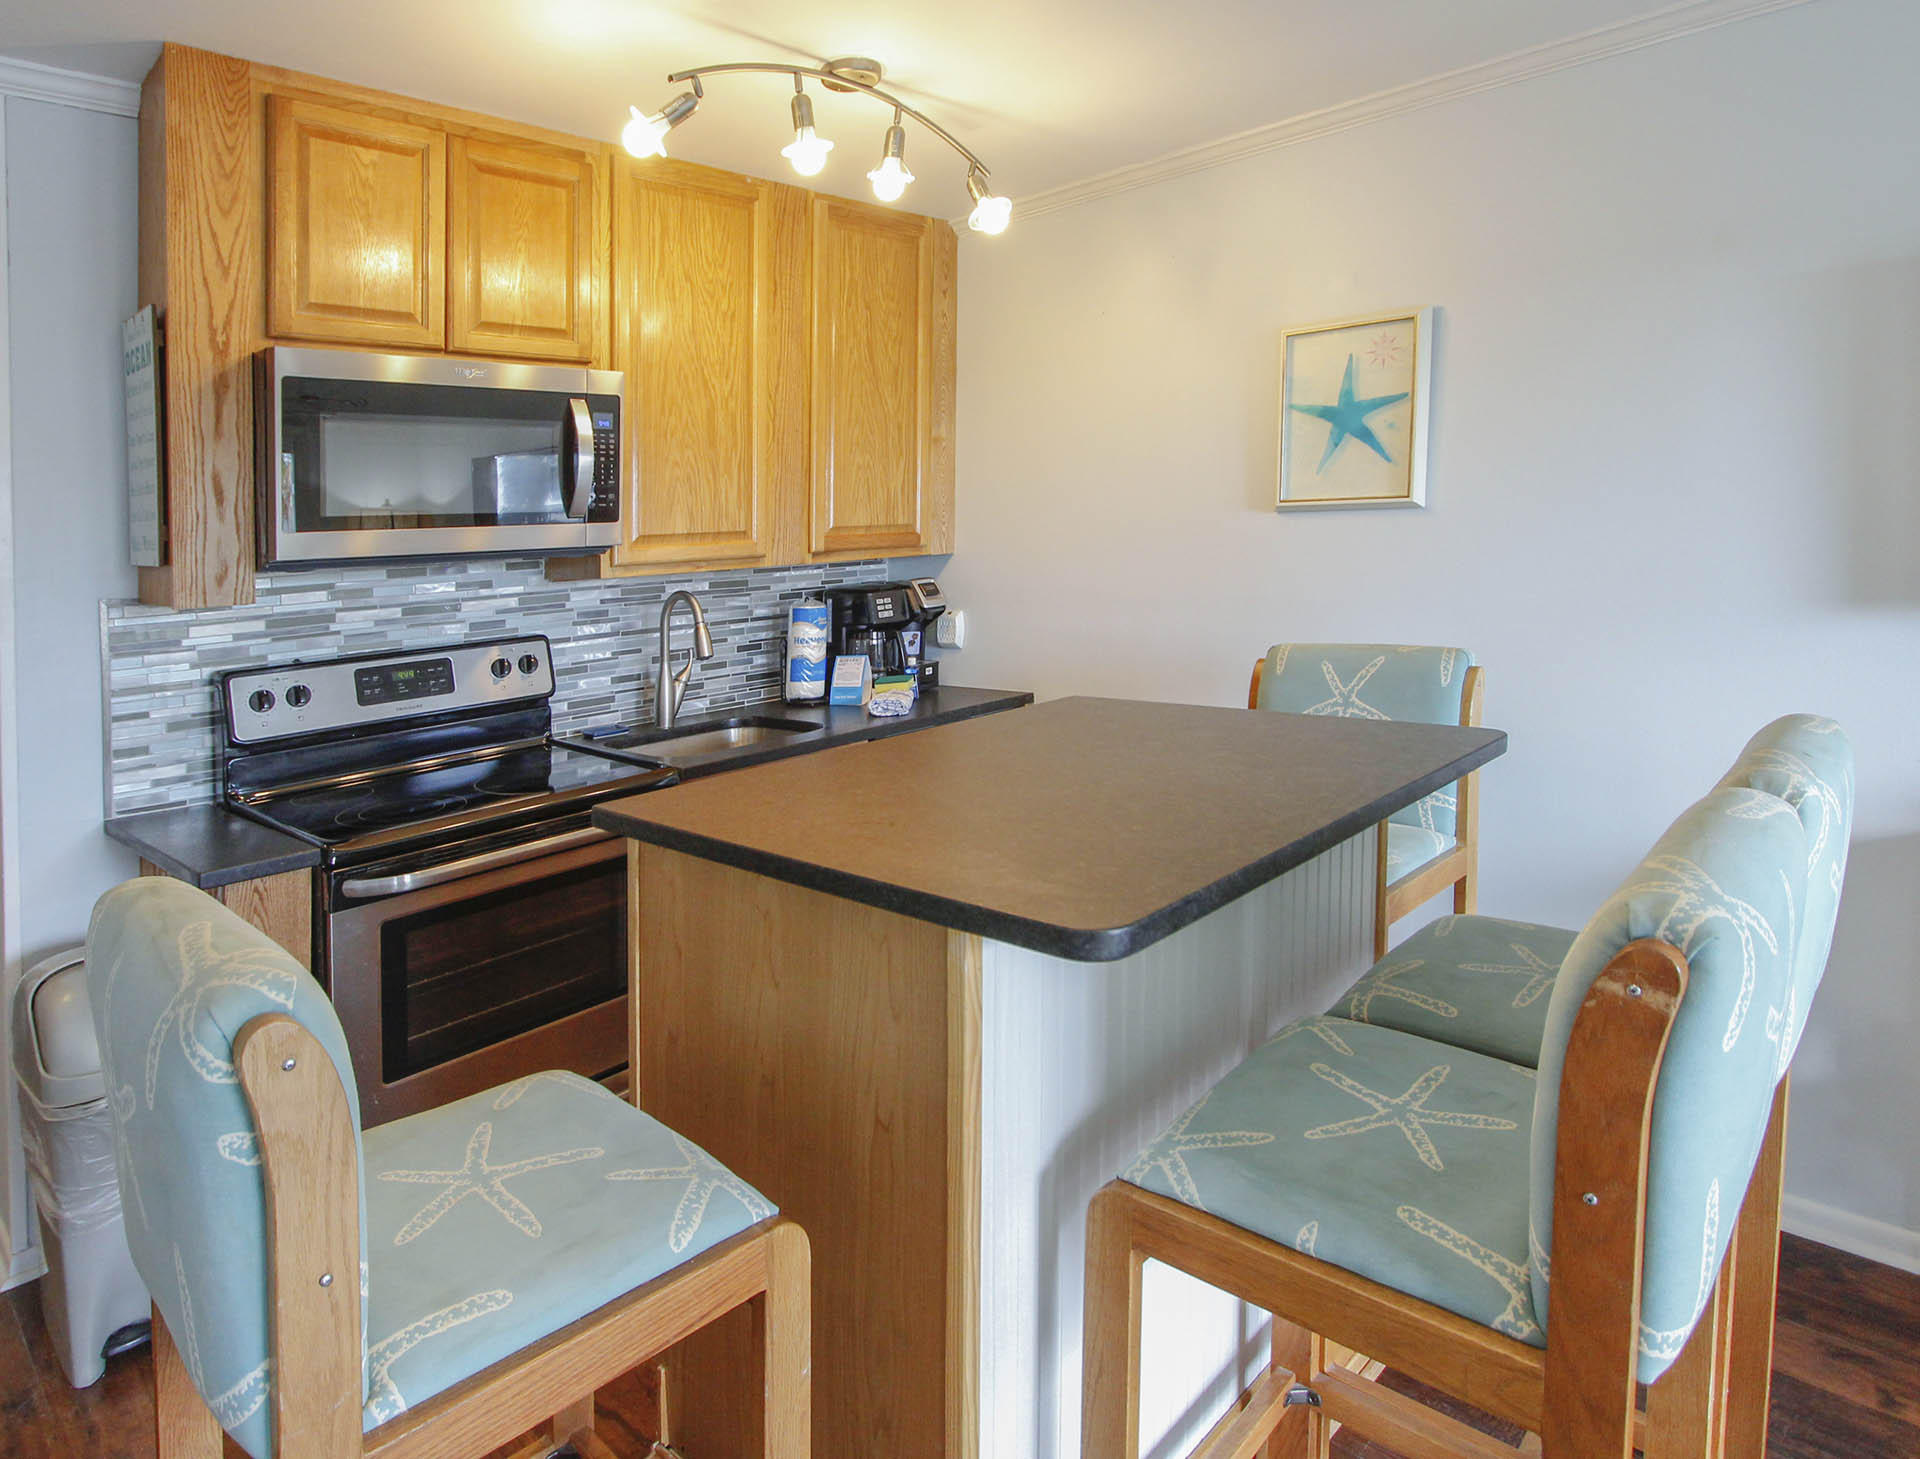 Sea Cabin On The Ocean Homes For Sale - 1300 Ocean, Isle of Palms, SC - 18